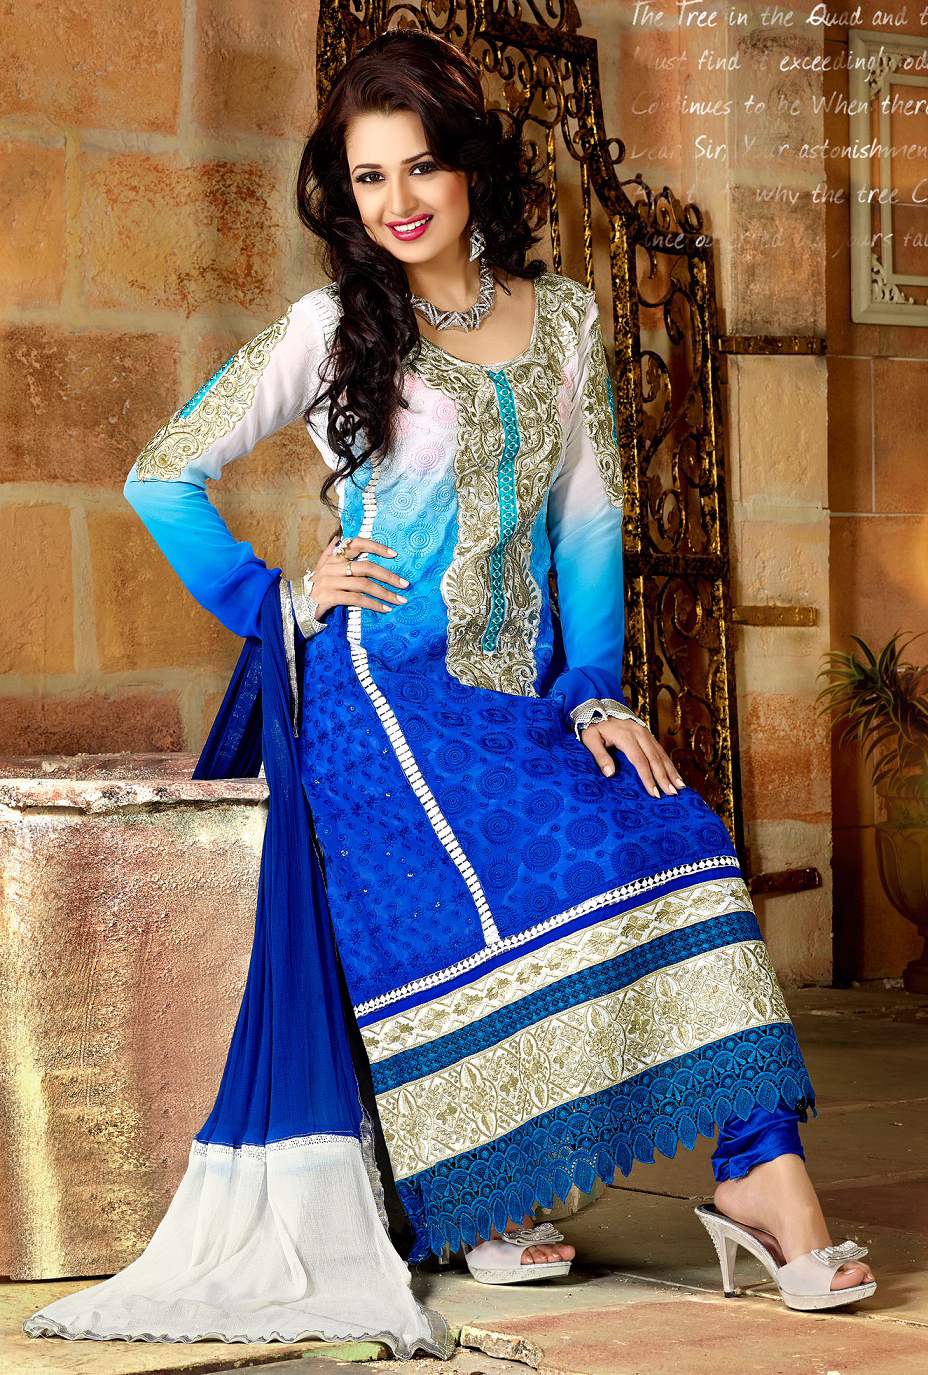 Indian Designer Clothes For Women Online variety of designer Indian